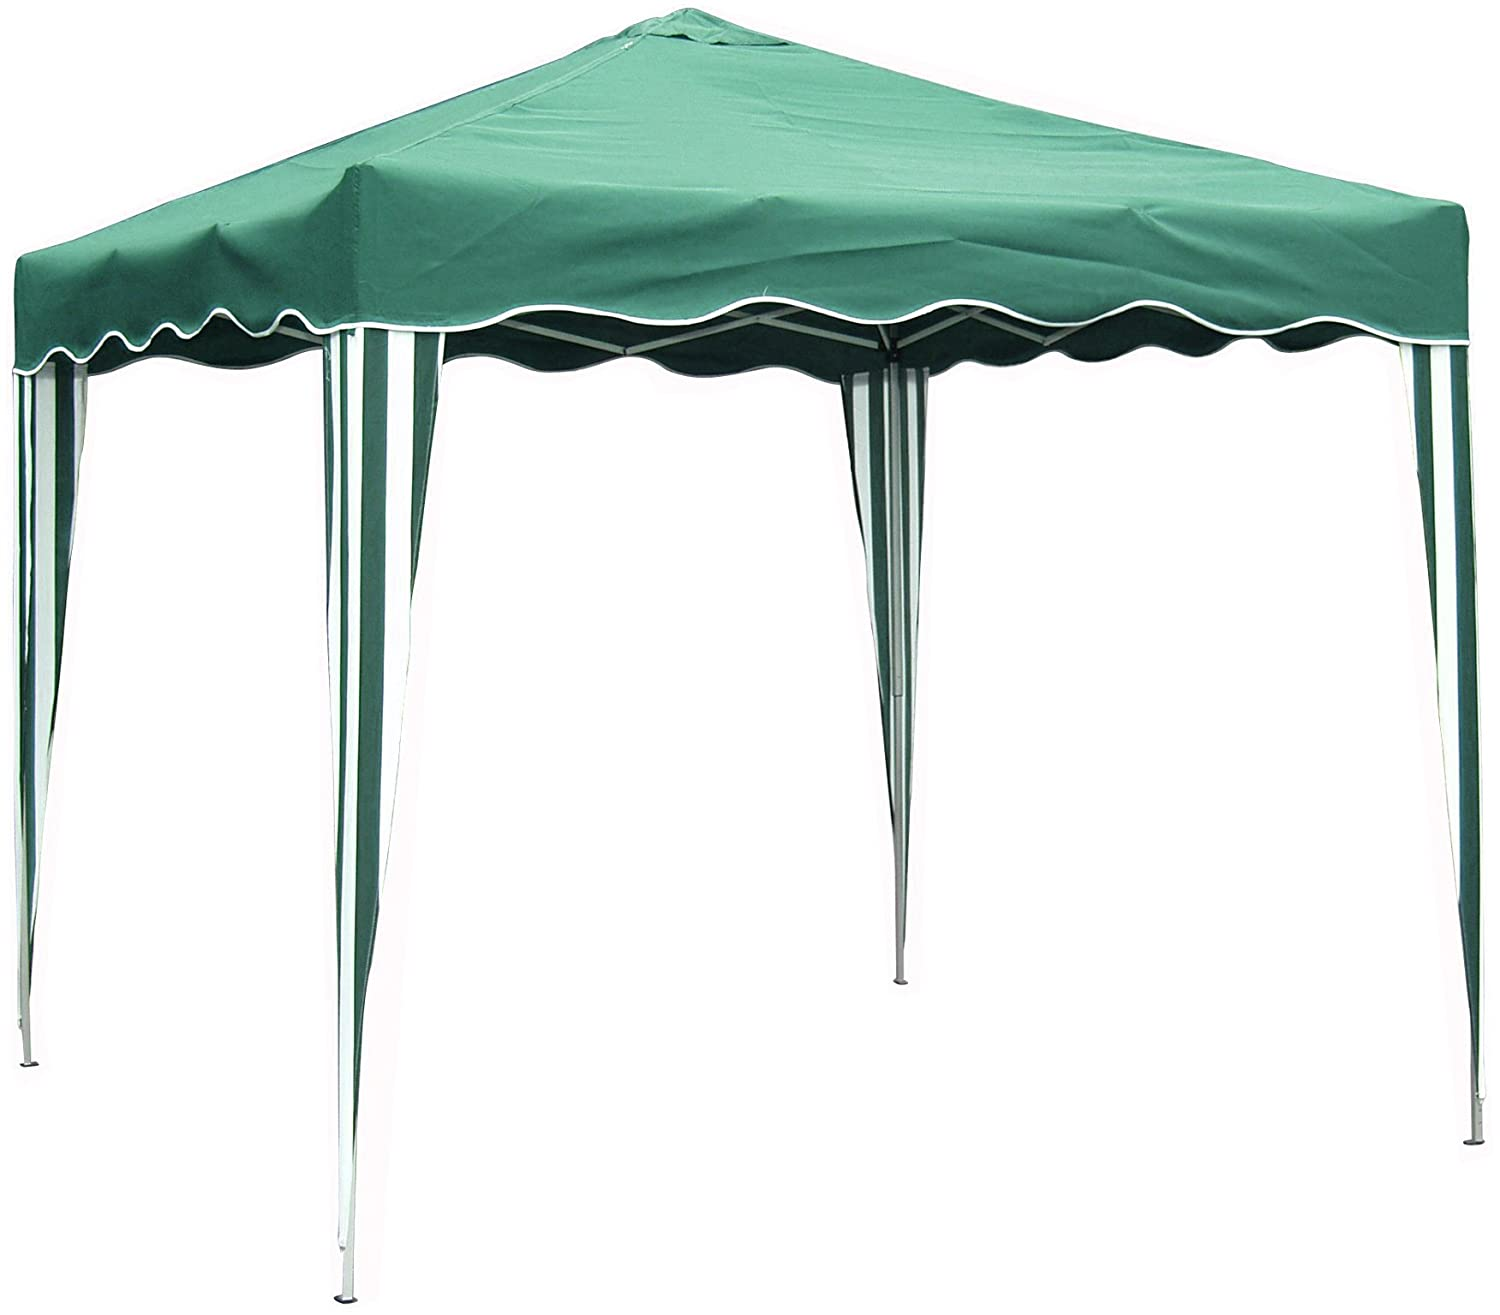 NEW POP UP GAZEBO GARDEN MARQUEE FOLDABLE PARTY TENT WATER RESISTANT 2.5M X 2.5M  eBay